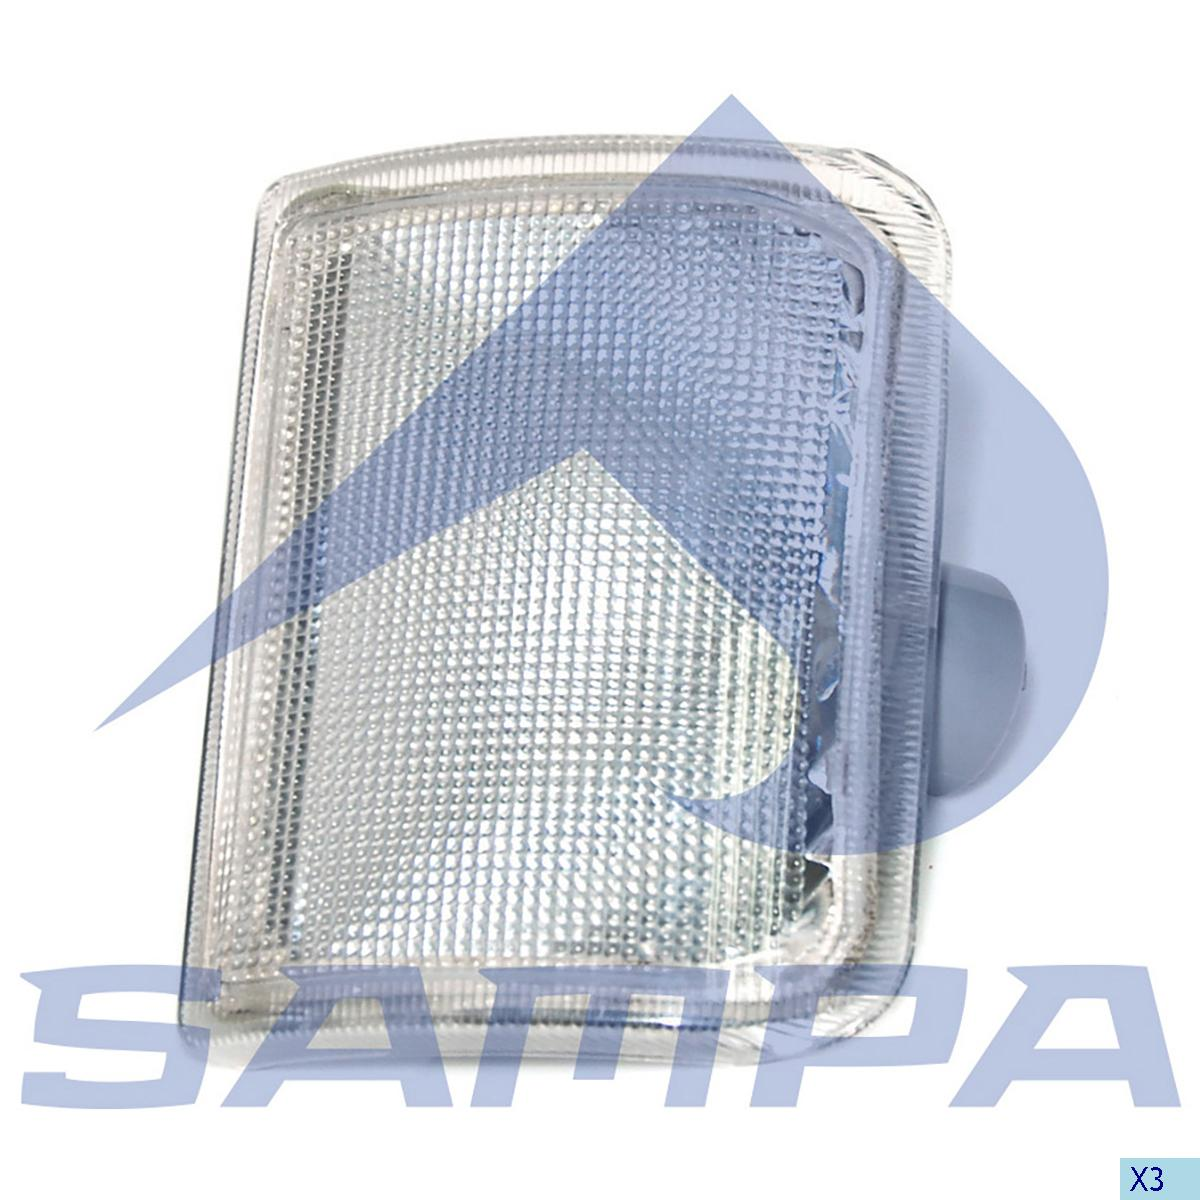 Signal Lamp, Daf, Electric System